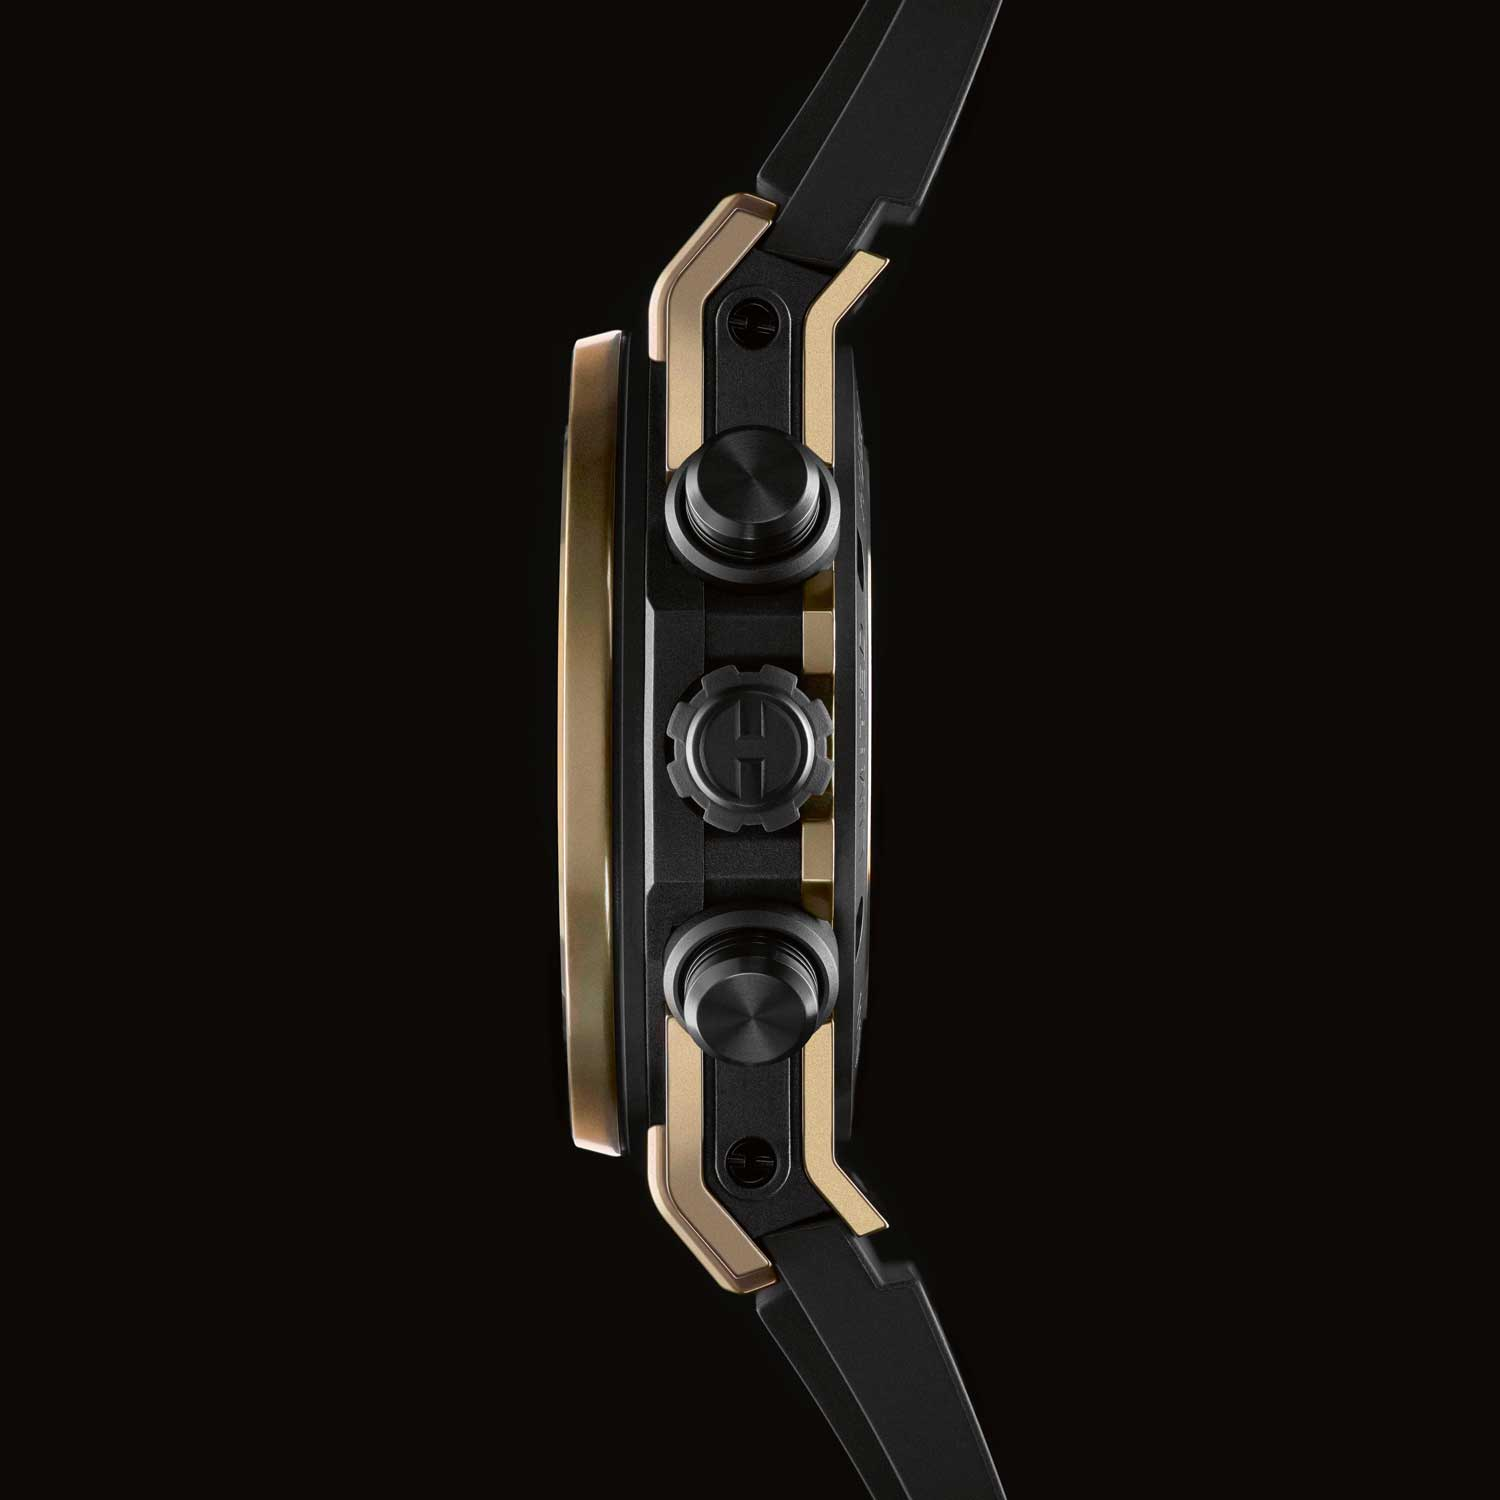 Hublot Big Bang Unico in Magic Gold, a special fused gold alloy made by injecting gold into porous ceramic.